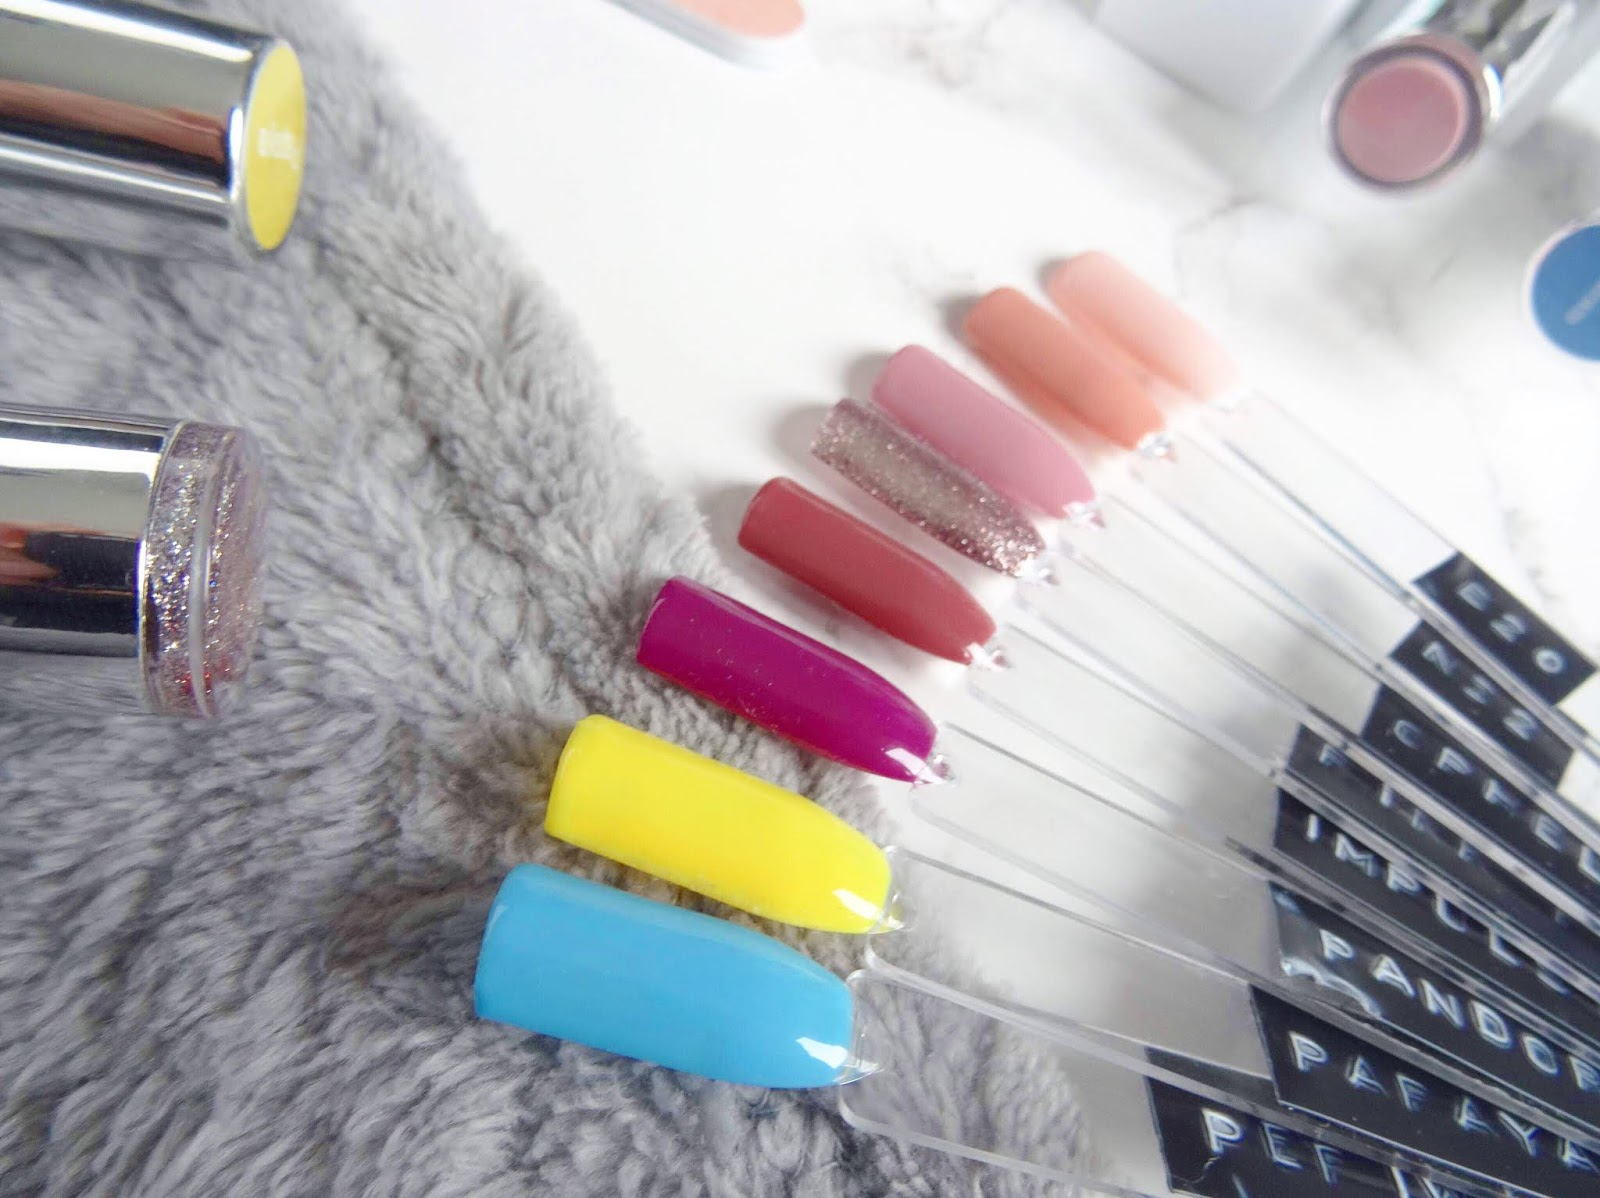 The Gel Bottle Nail Swatches